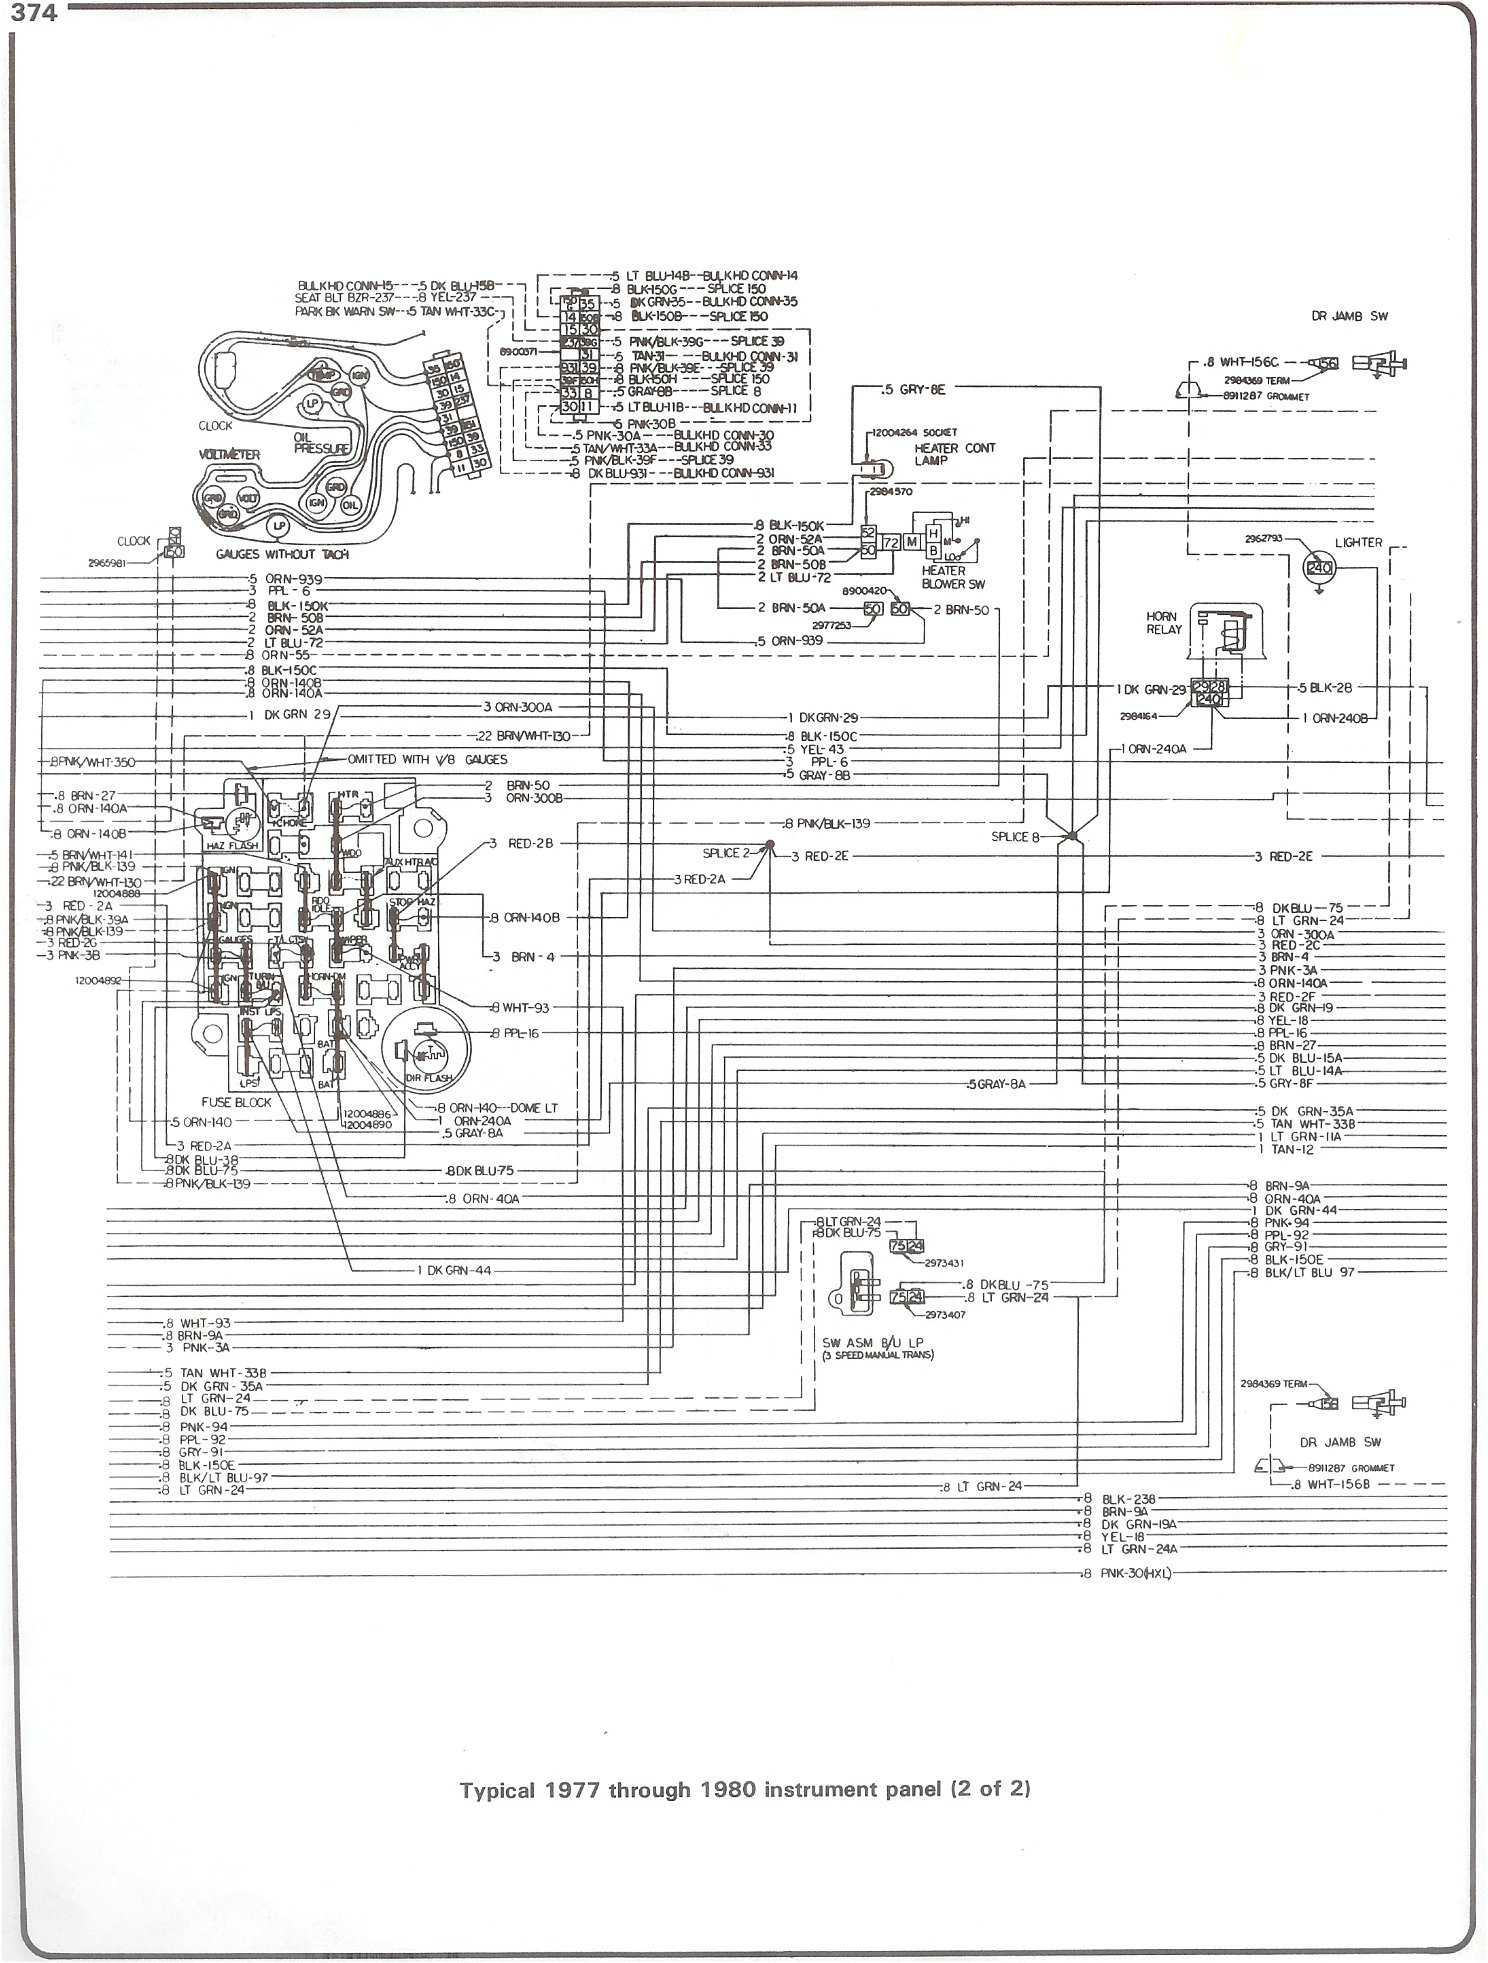 77 80_instrument_pg2 complete 73 87 wiring diagrams 1988-98 gm-c/k series wiring schematic at reclaimingppi.co